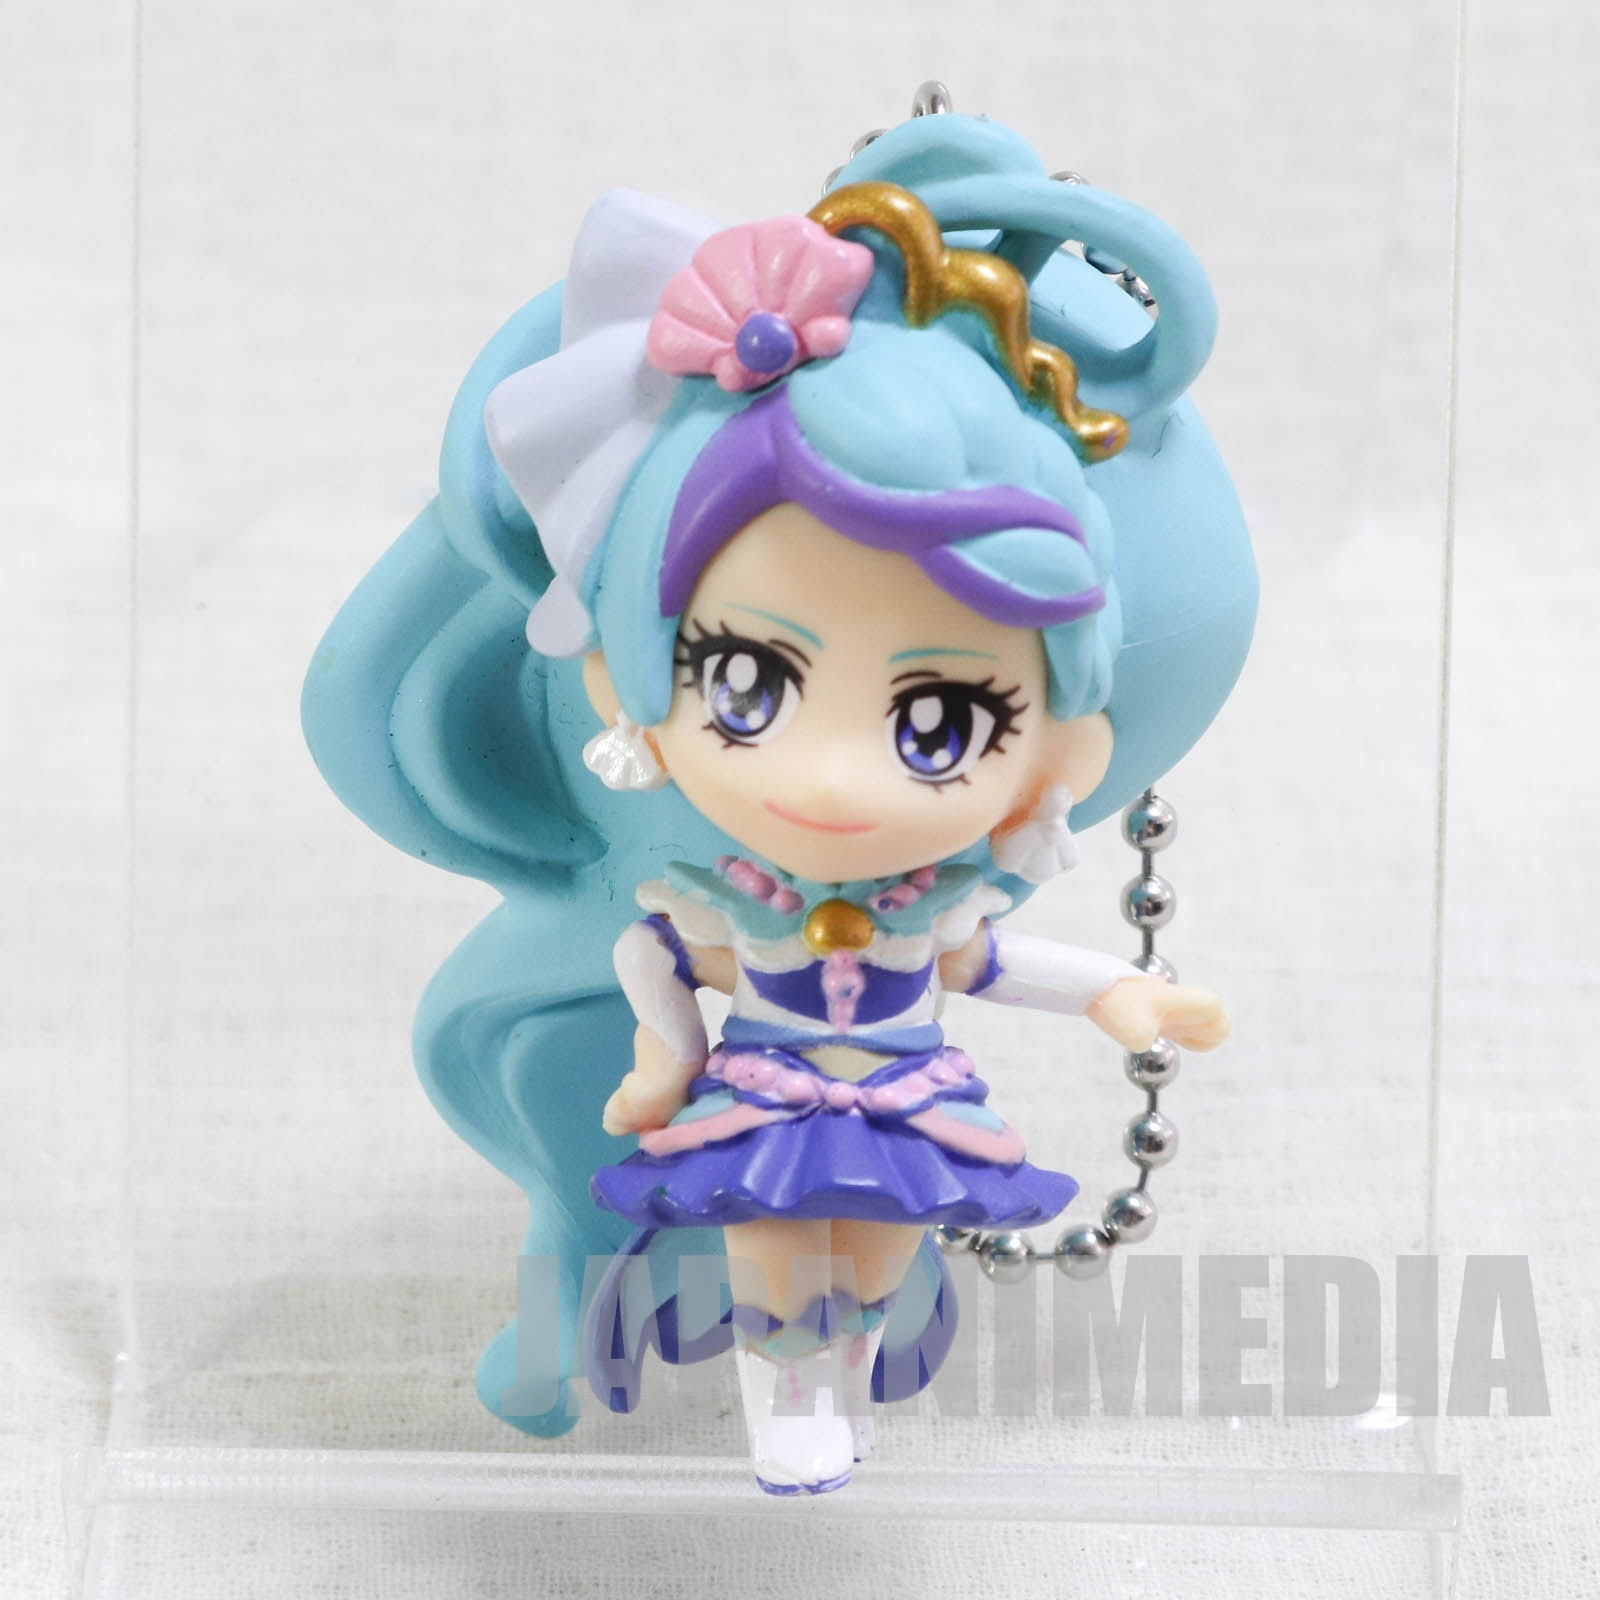 Go! Princess PreCure Cure Mermaid Mascot Figure Ball Keychain JAPAN ANIME